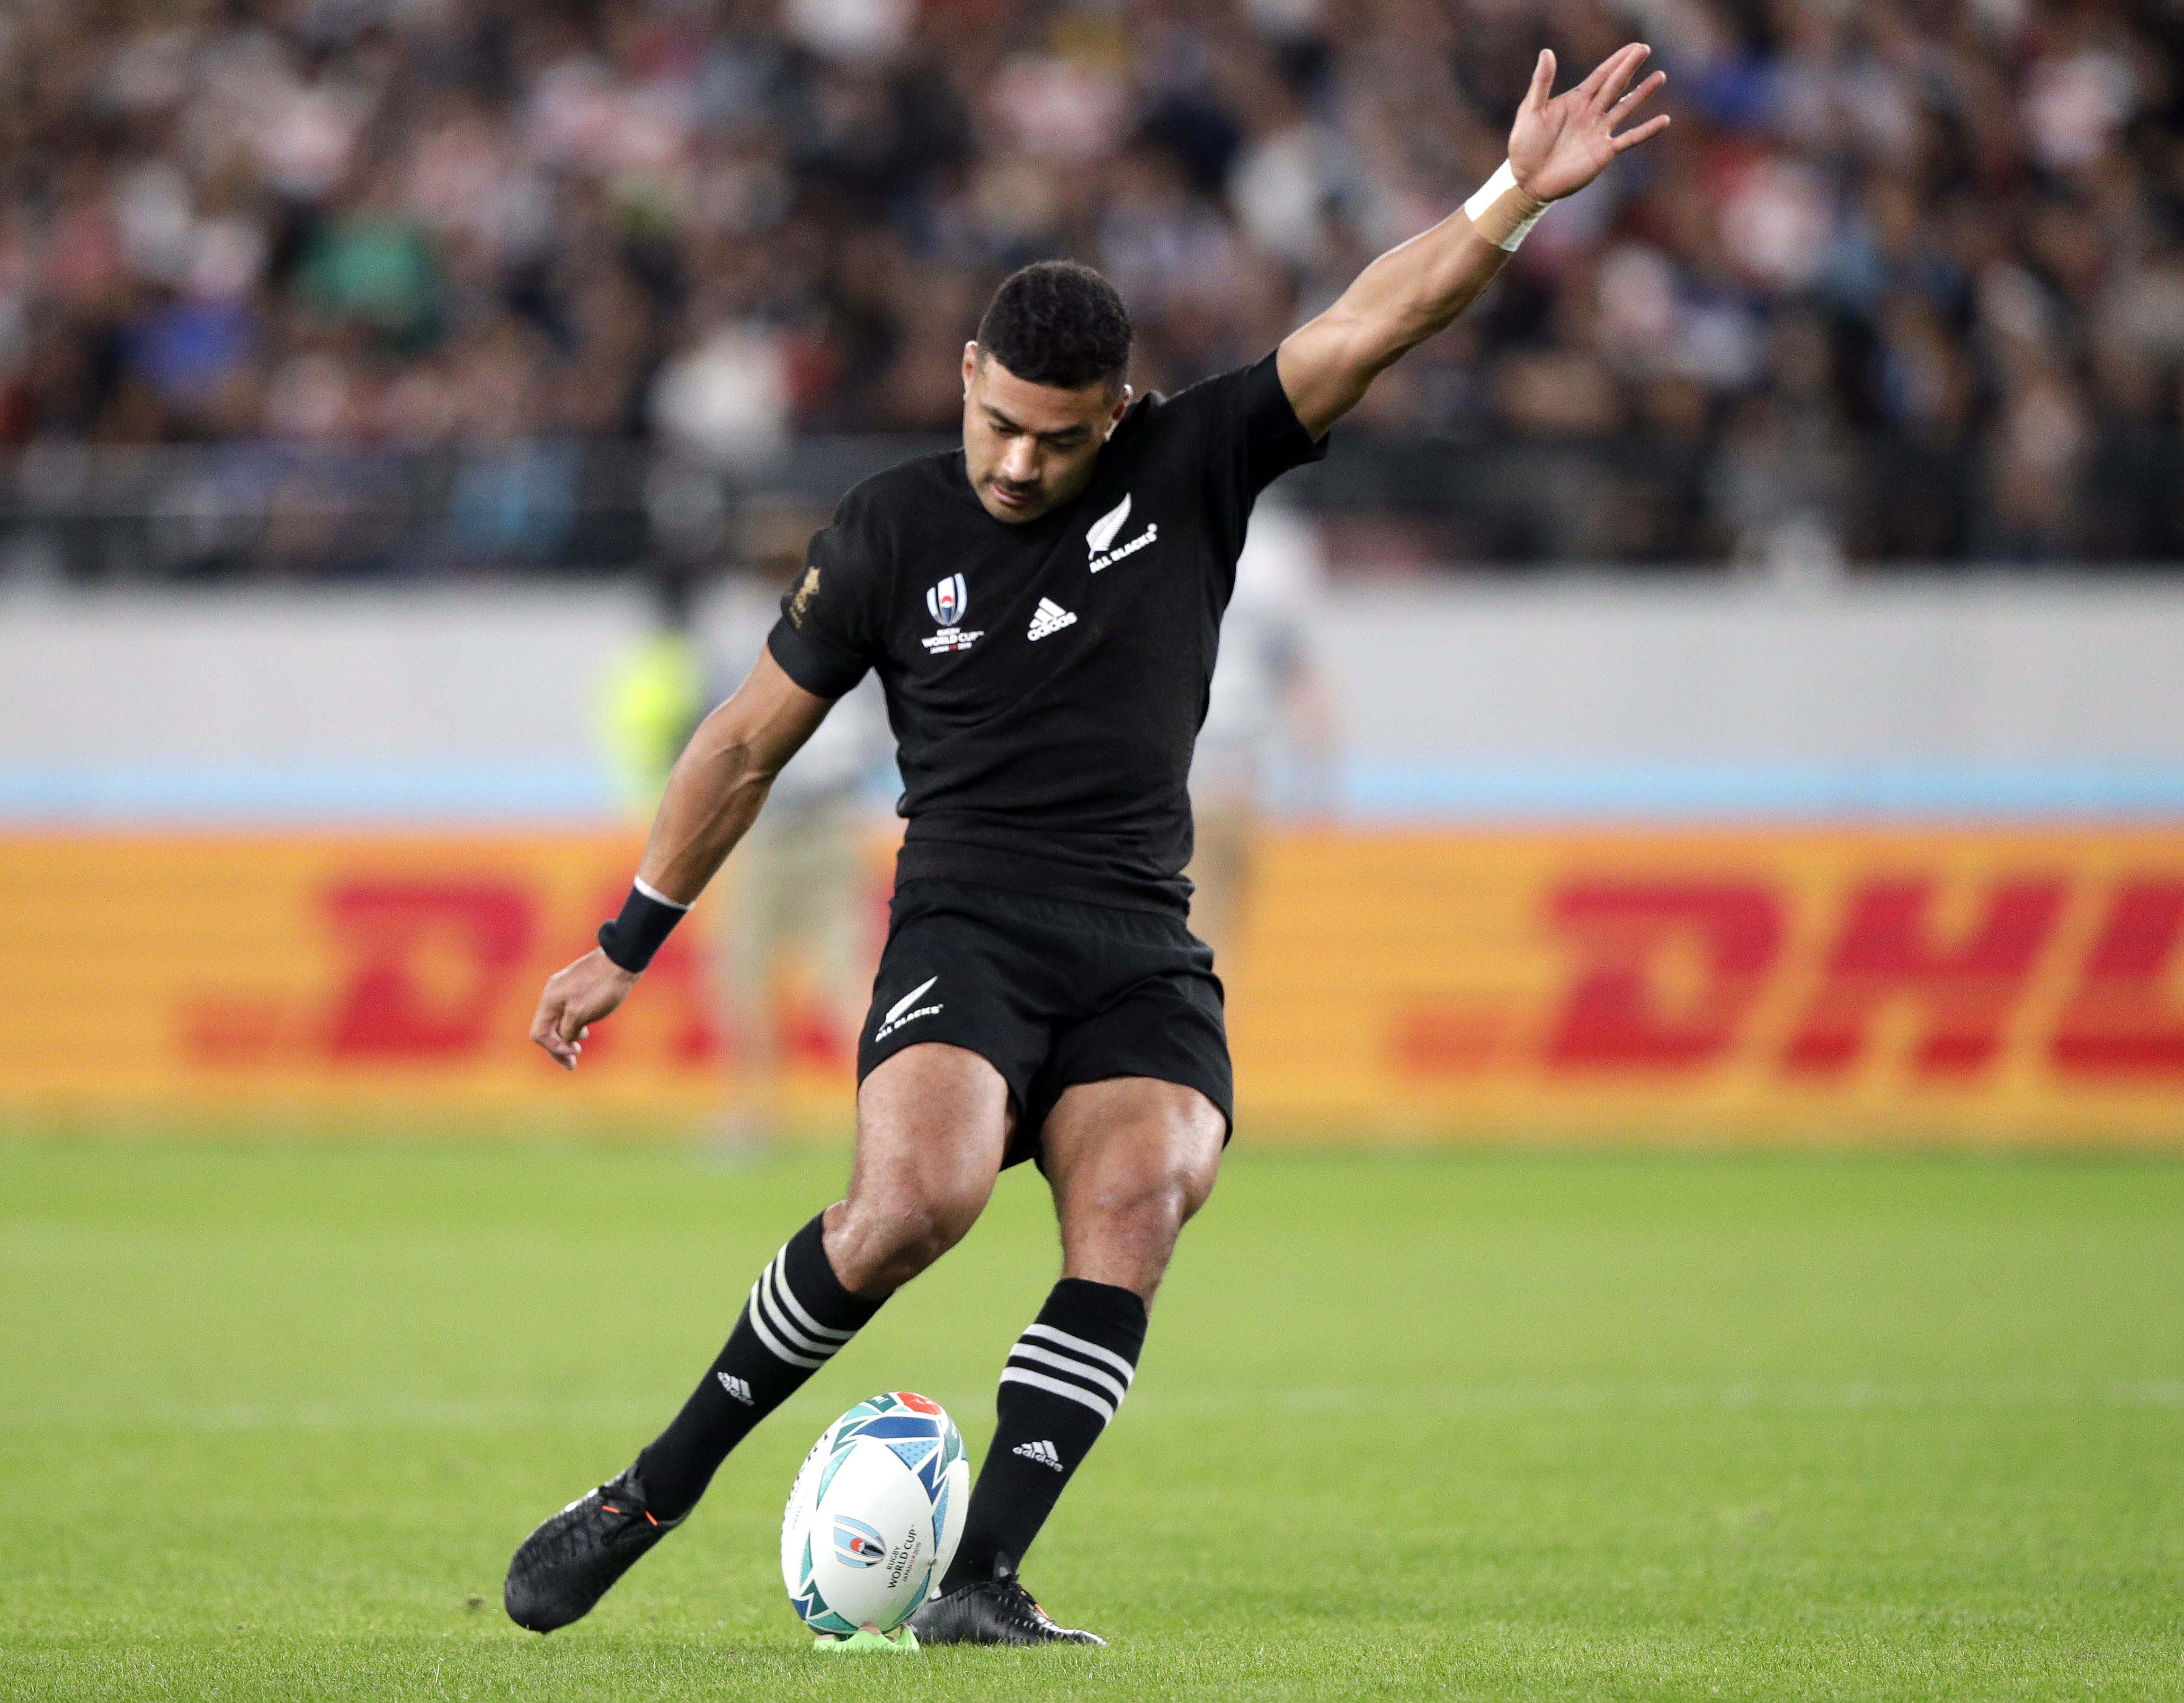 FILE - In this Nov. 1, 2019, file photo, New Zealand's Richie Mo'unga kicks a conversion during the Rugby World Cup bronze final game against Wales at Tokyo Stadium, in Tokyo. New All Blacks head coach Ian Foster opted for the in-form Mo'unga at No. 10 ahead of the incumbent Beauden Barrett, a two-time World Rugby Player of the Year who will start at fullback in the first Bledisloe Cup test against Australia, Sunday, Oct. 11, 2020. (AP Photo/Mark Baker, File)